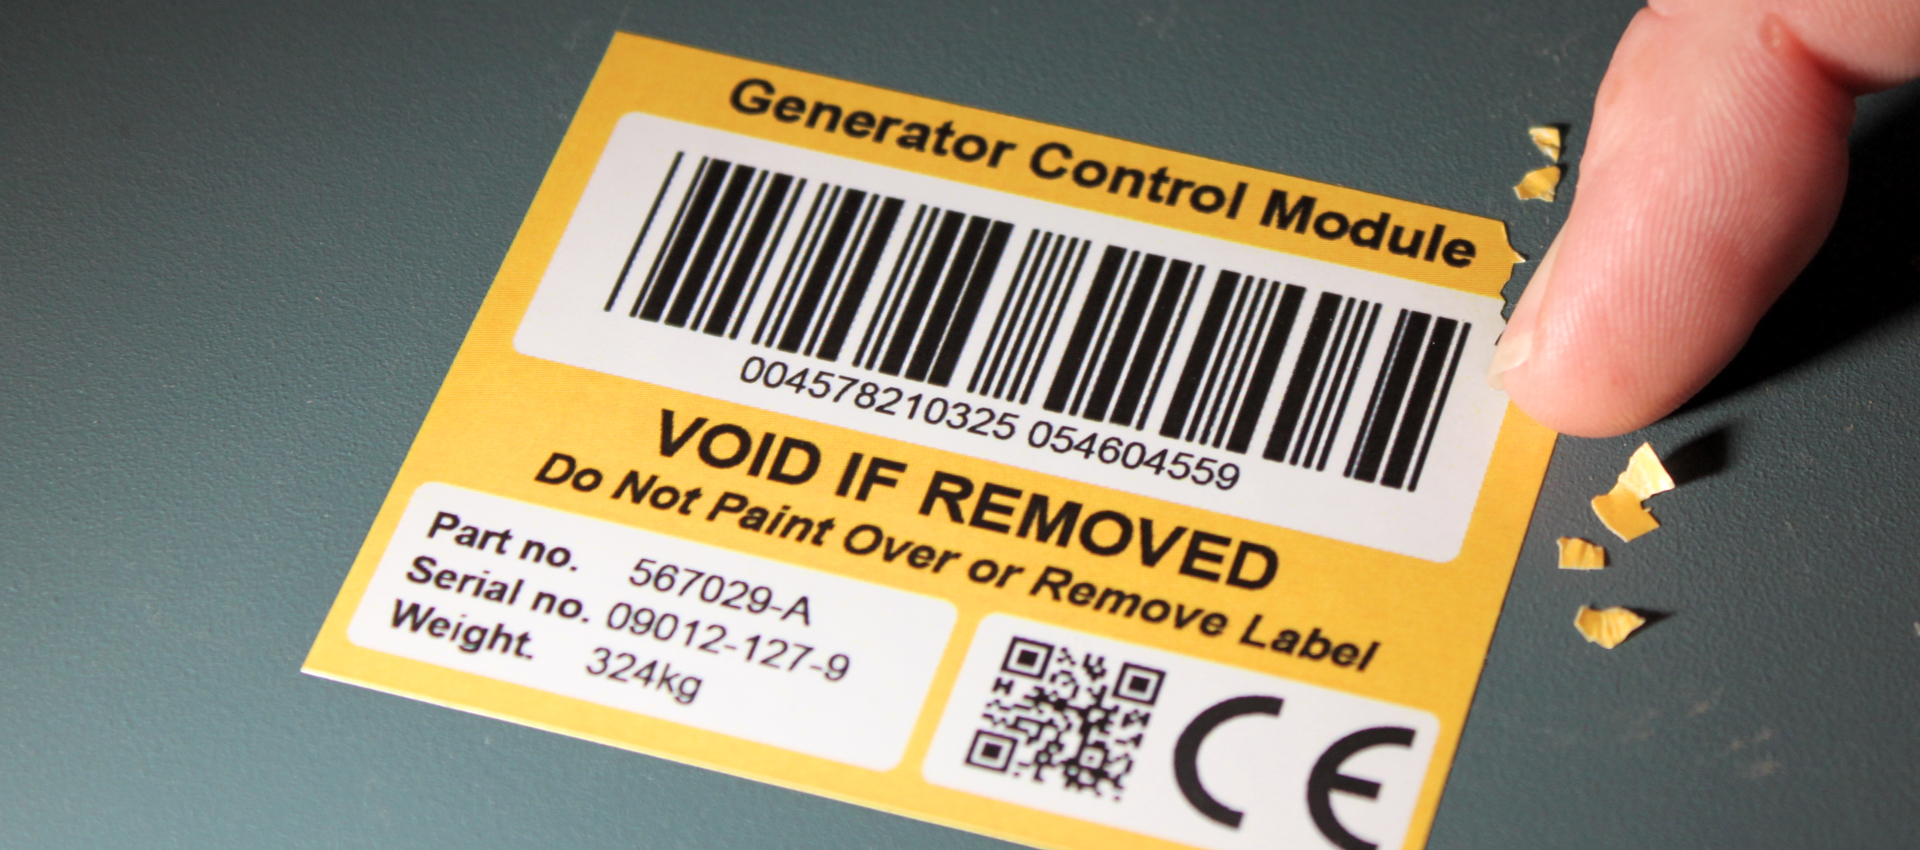 photo regarding Printable Tamper Proof Labels named Safety Labels CILS